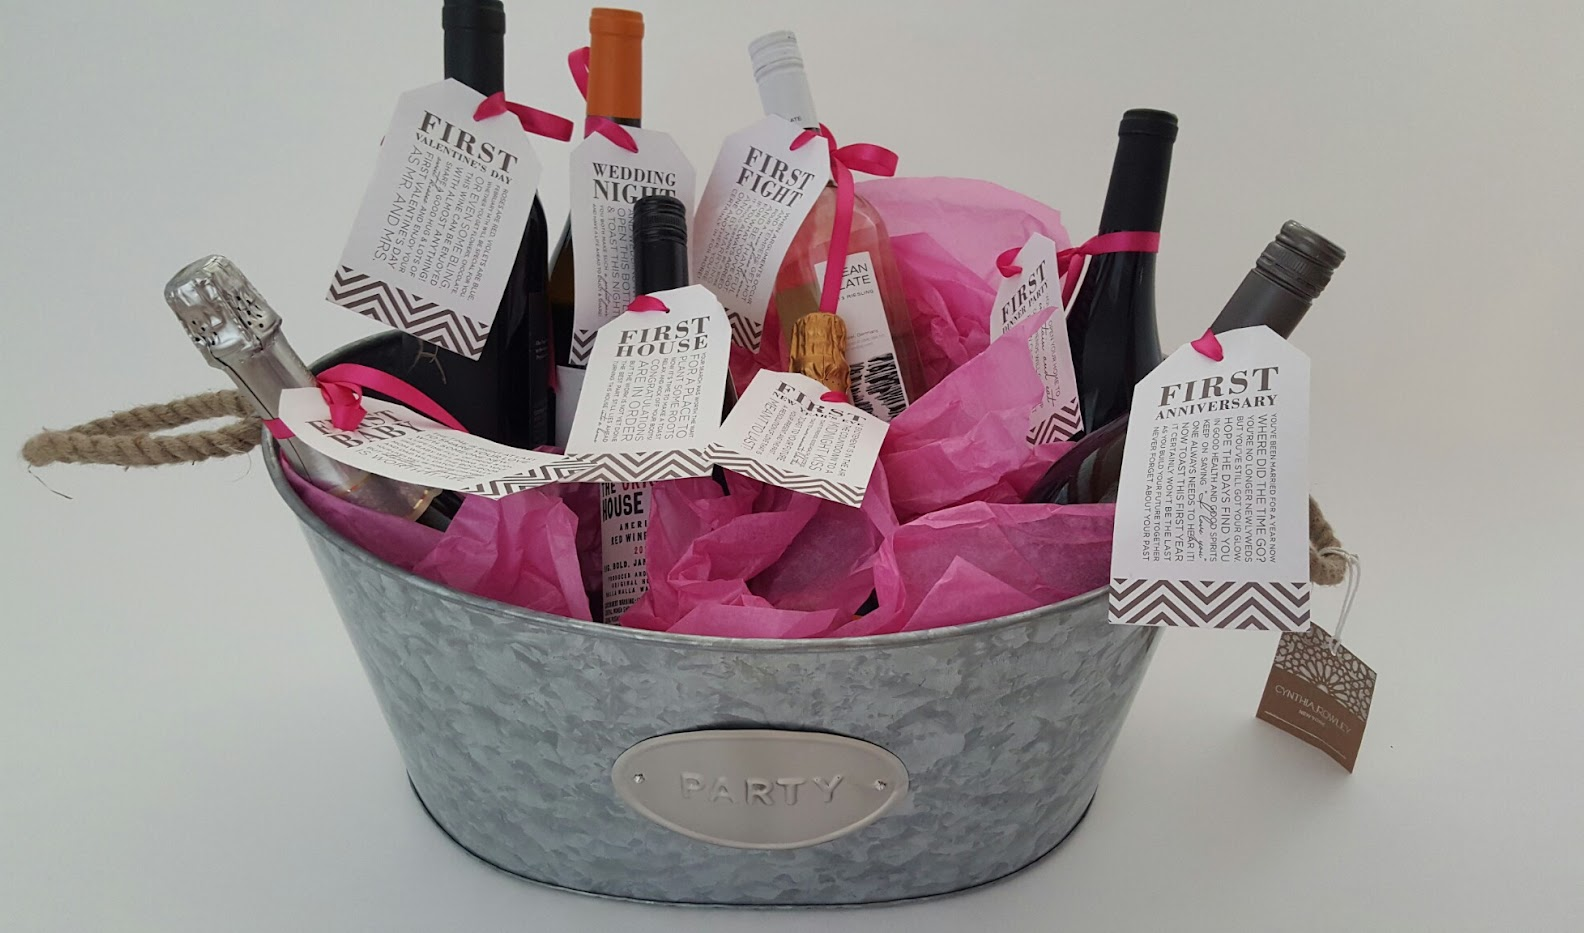 Diy Bridal Shower Gift Basket Ideas : Bridal Shower Gift DIY to Try: A Basket of ?Firsts? for the Bride ...